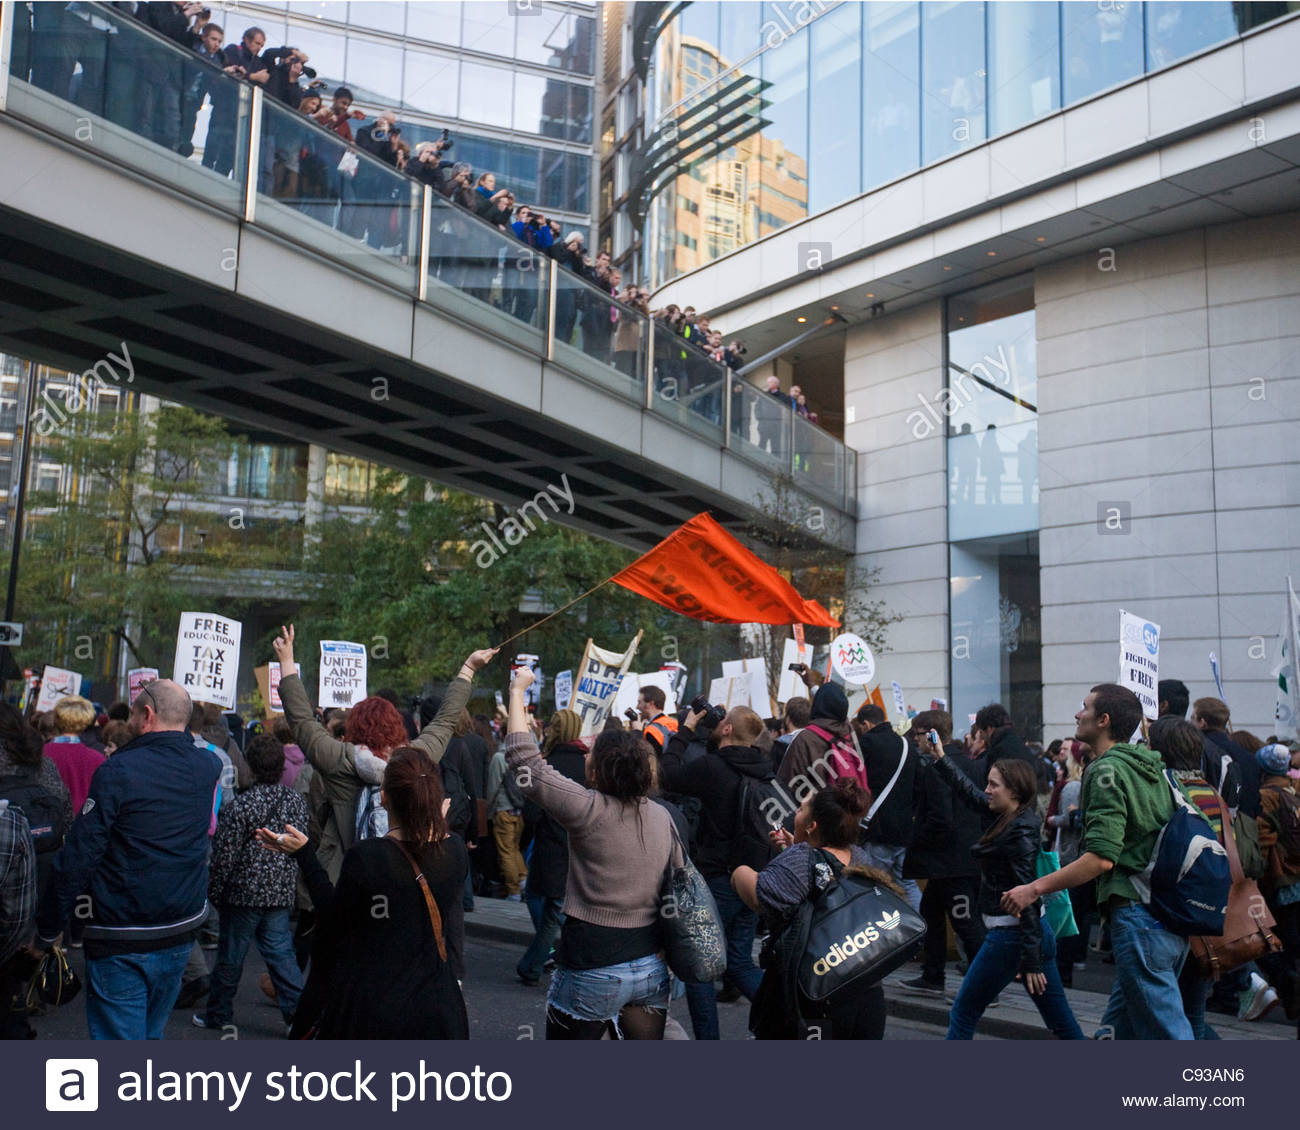 Student demonstration at London Wall by Museum of London - Stock Image